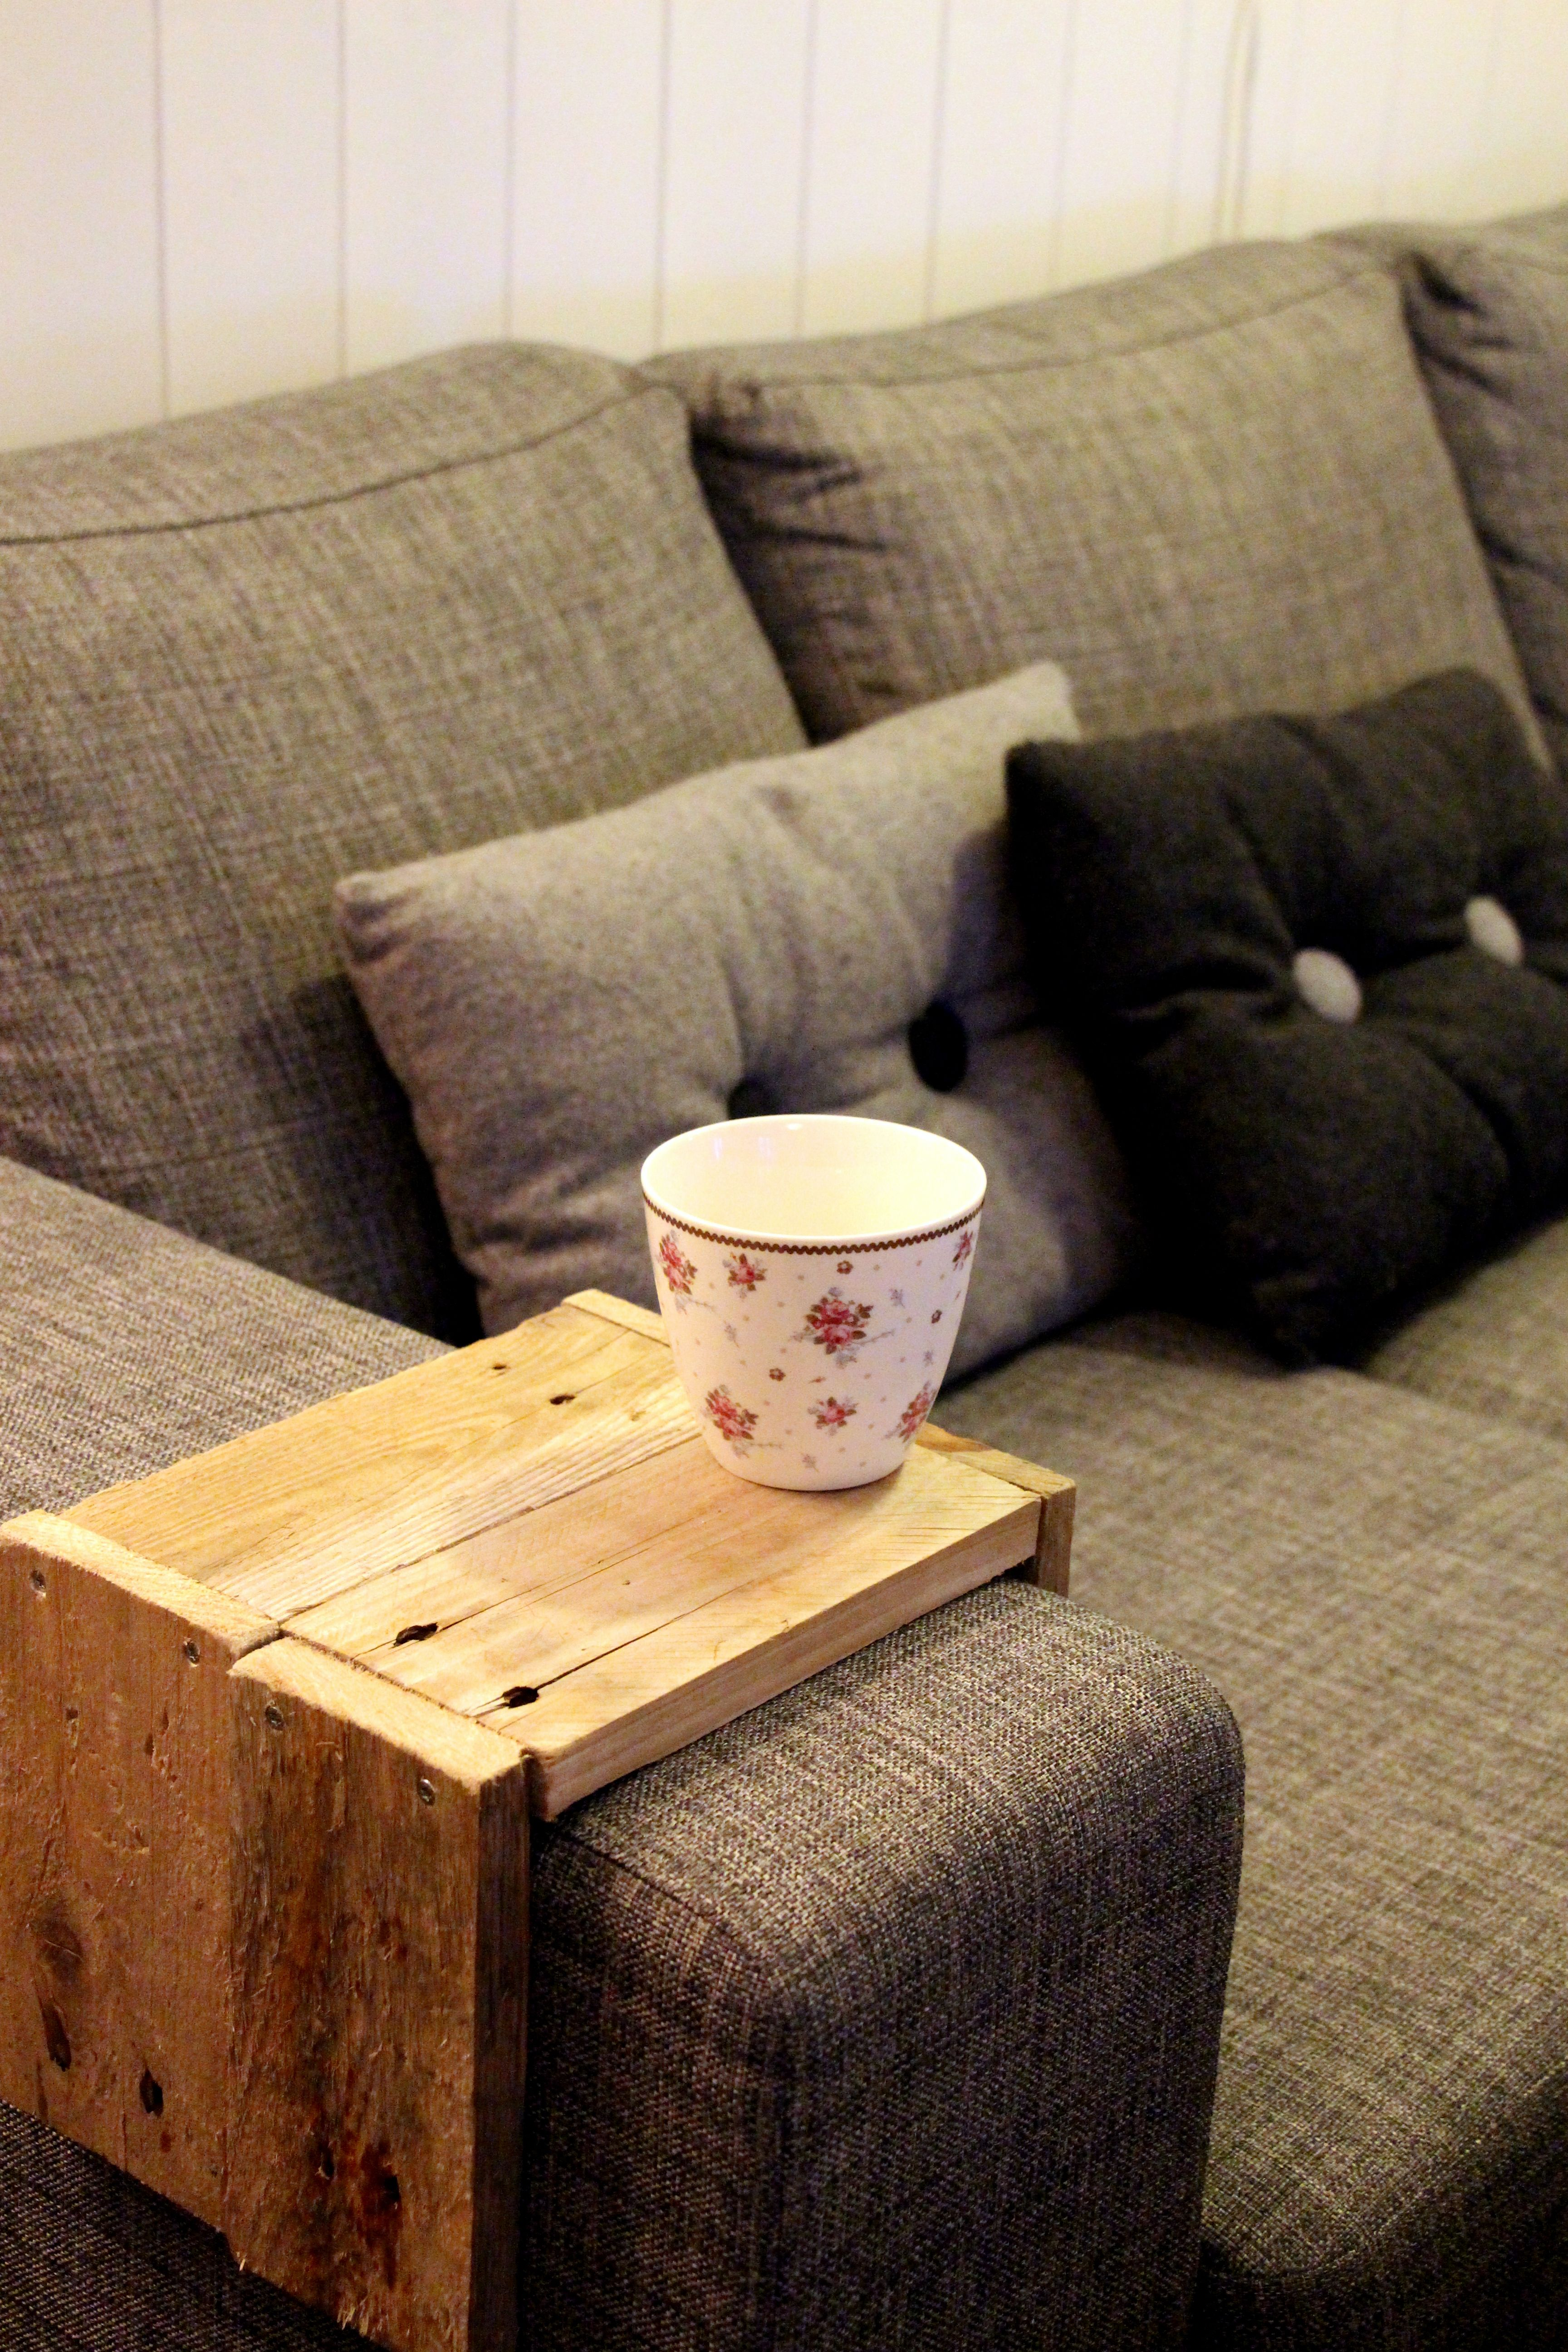 Diy driftwood sofa arm rest table wohntipps pinterest diy driftwood sofa arm rest table geotapseo Choice Image